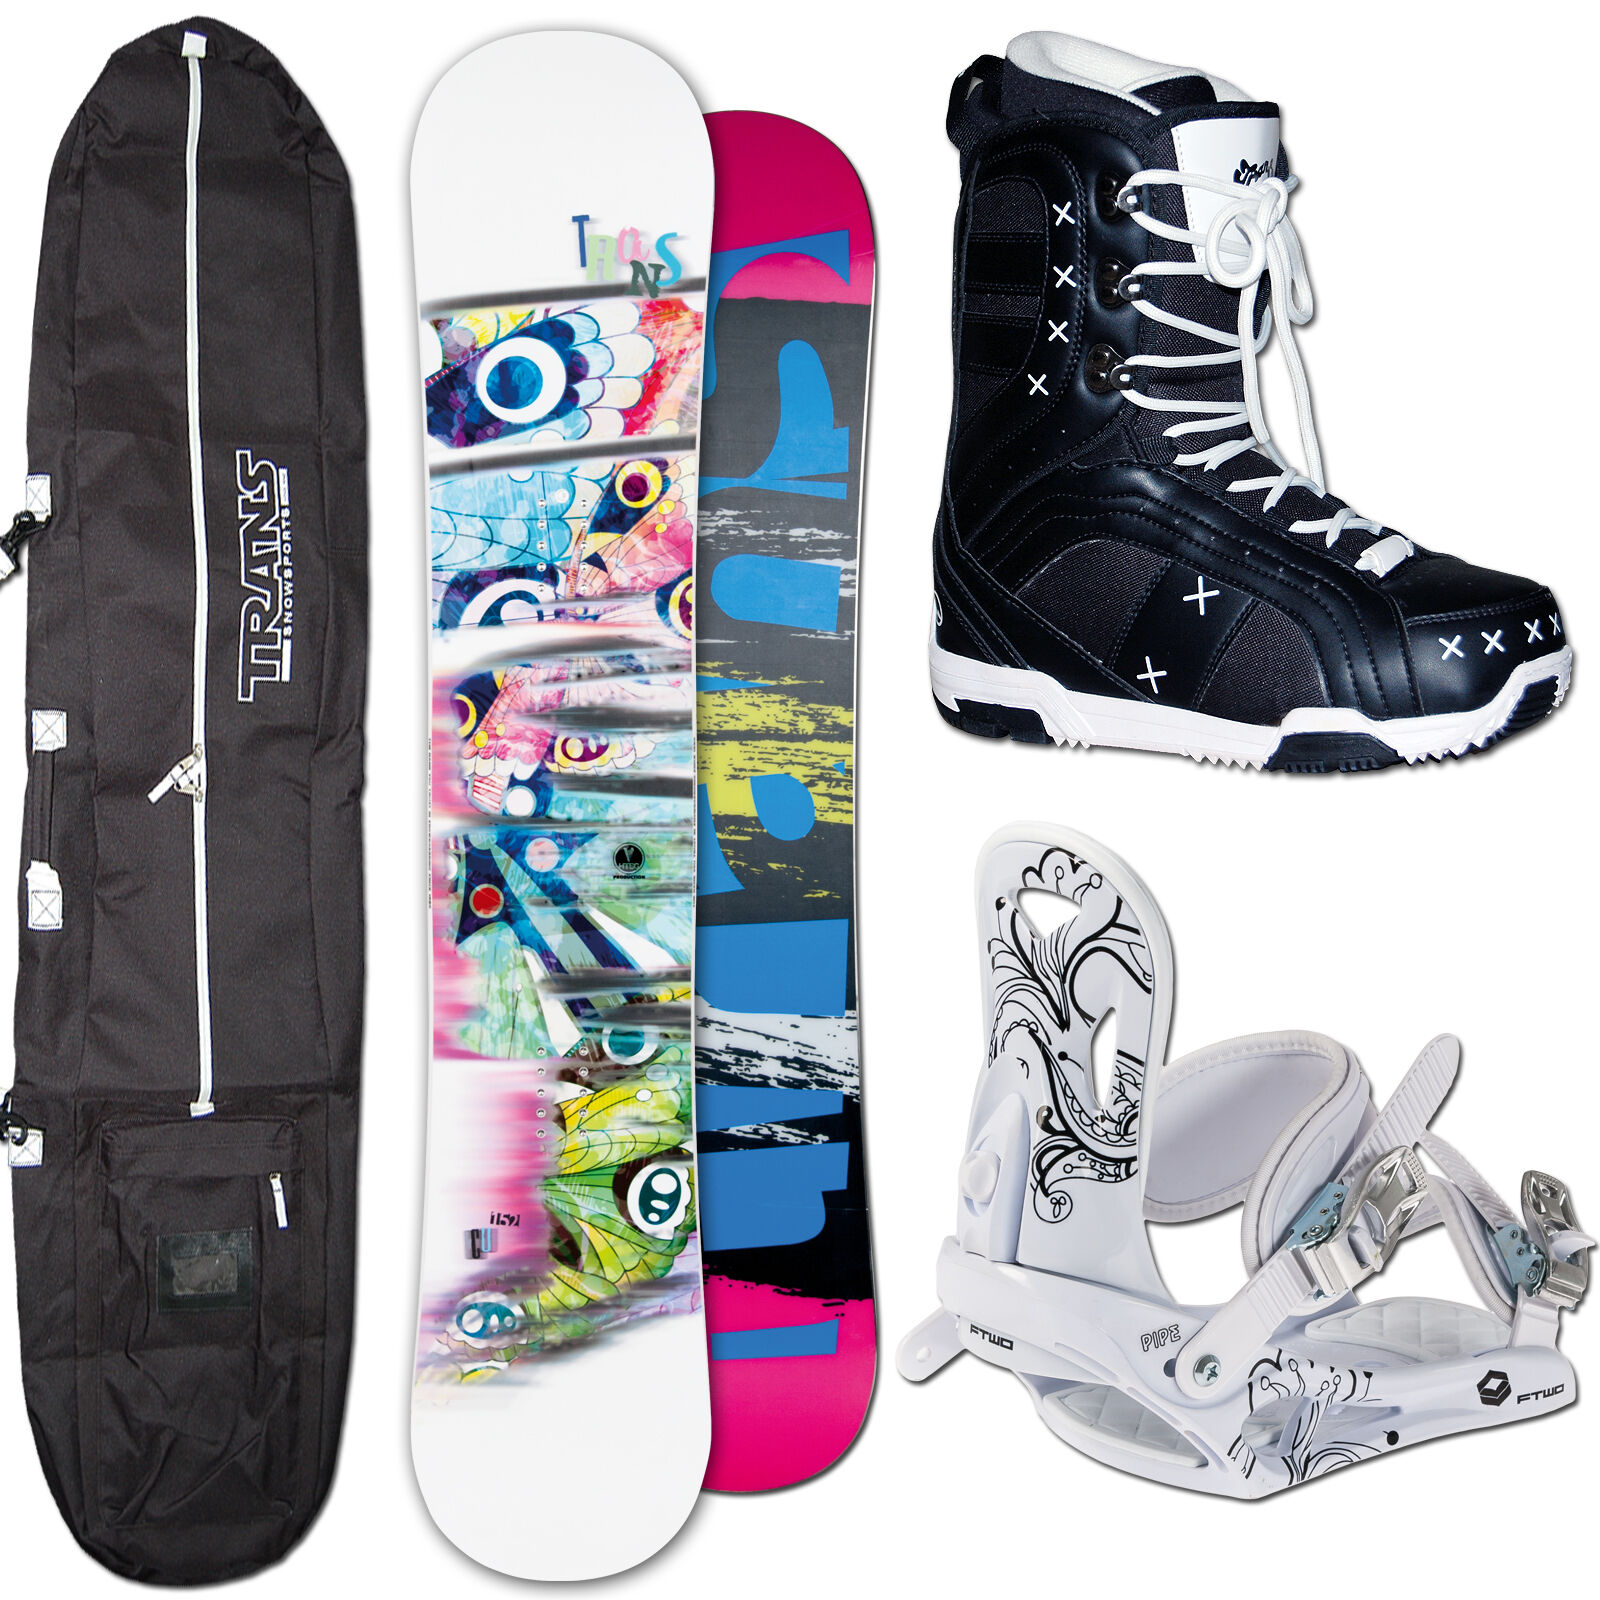 Women's Snowboard Trans Cu 141 cm + Ftwo Pipe Binding SIZE M +Bag+ Boots